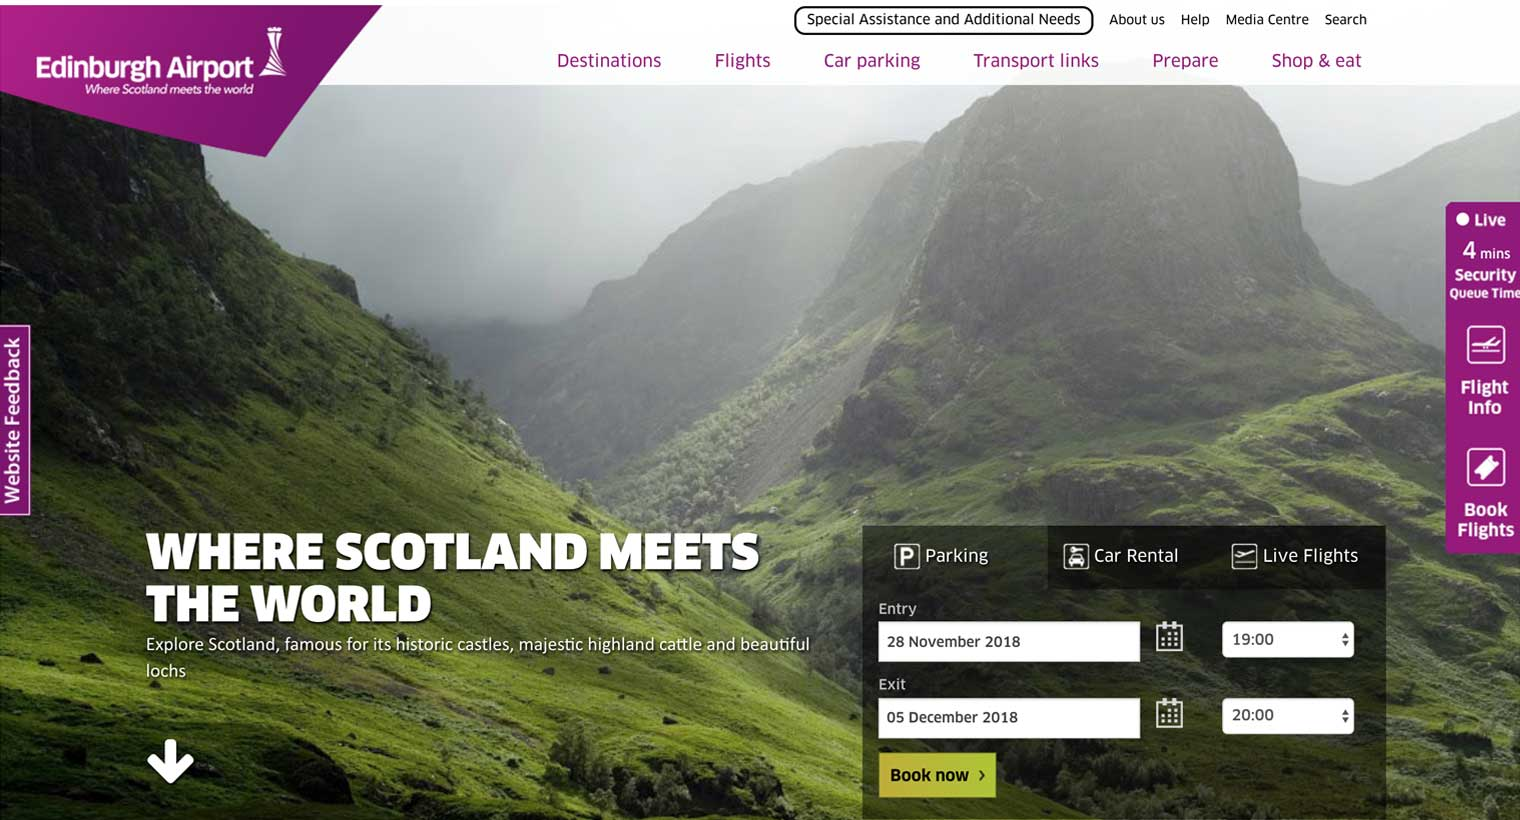 Edinburgh Airport home page